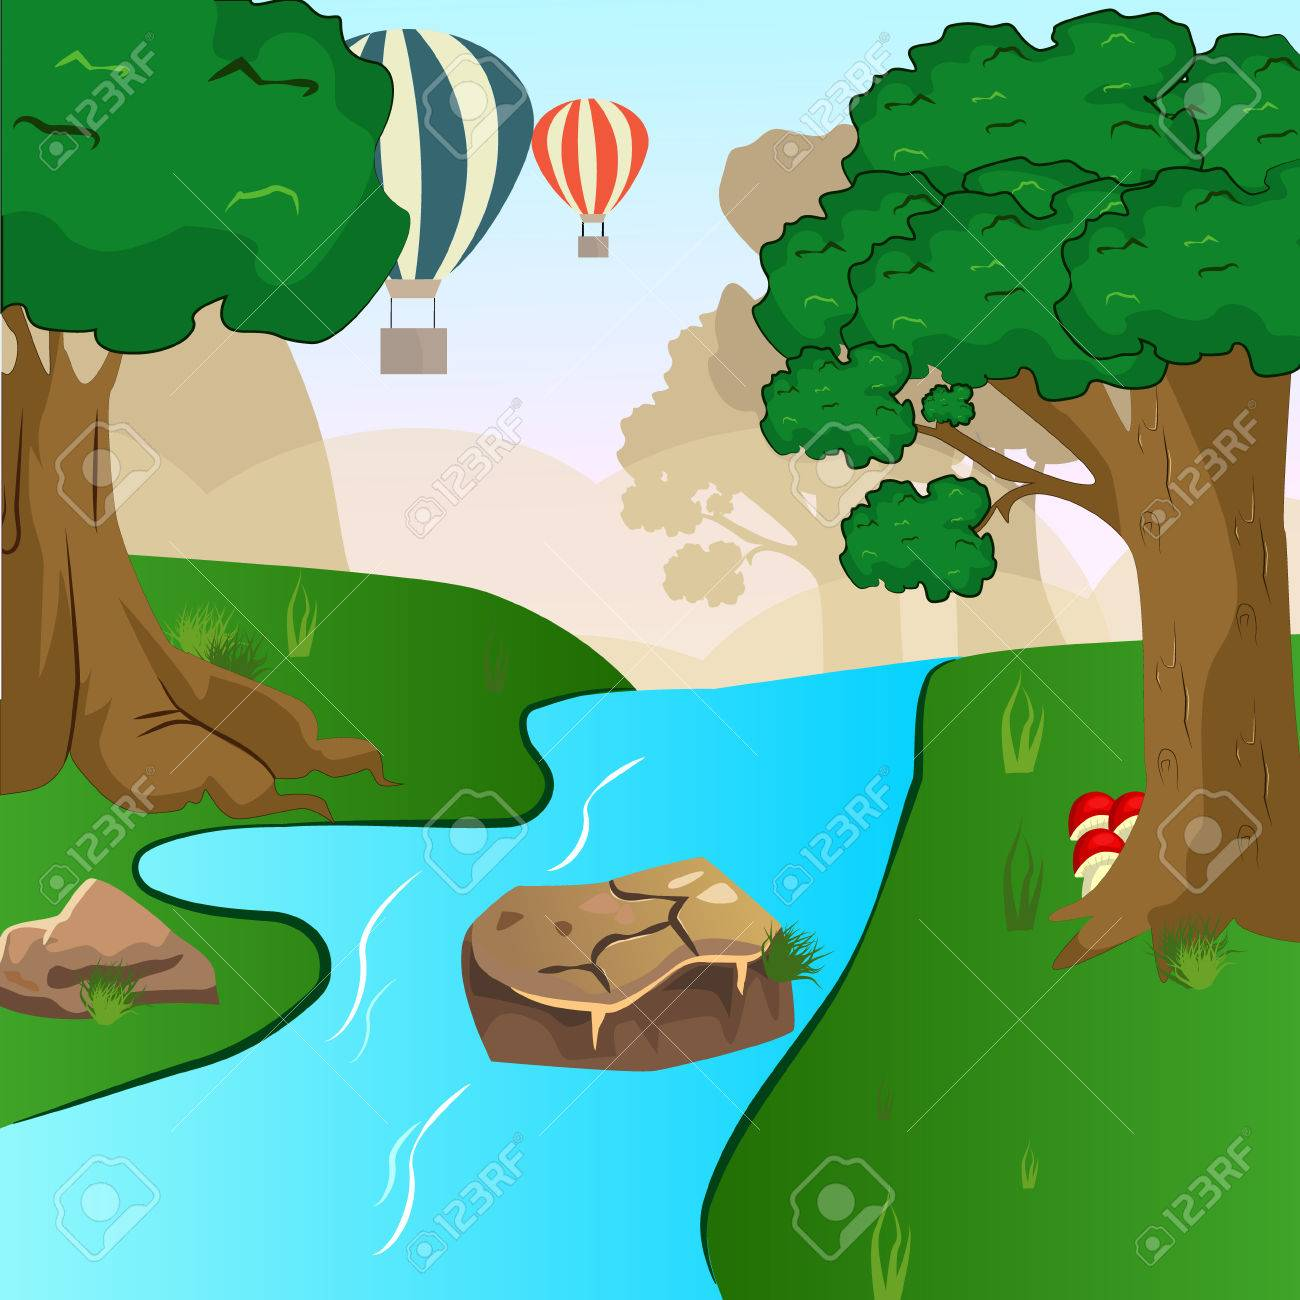 Blue river flowing across green forest vector.